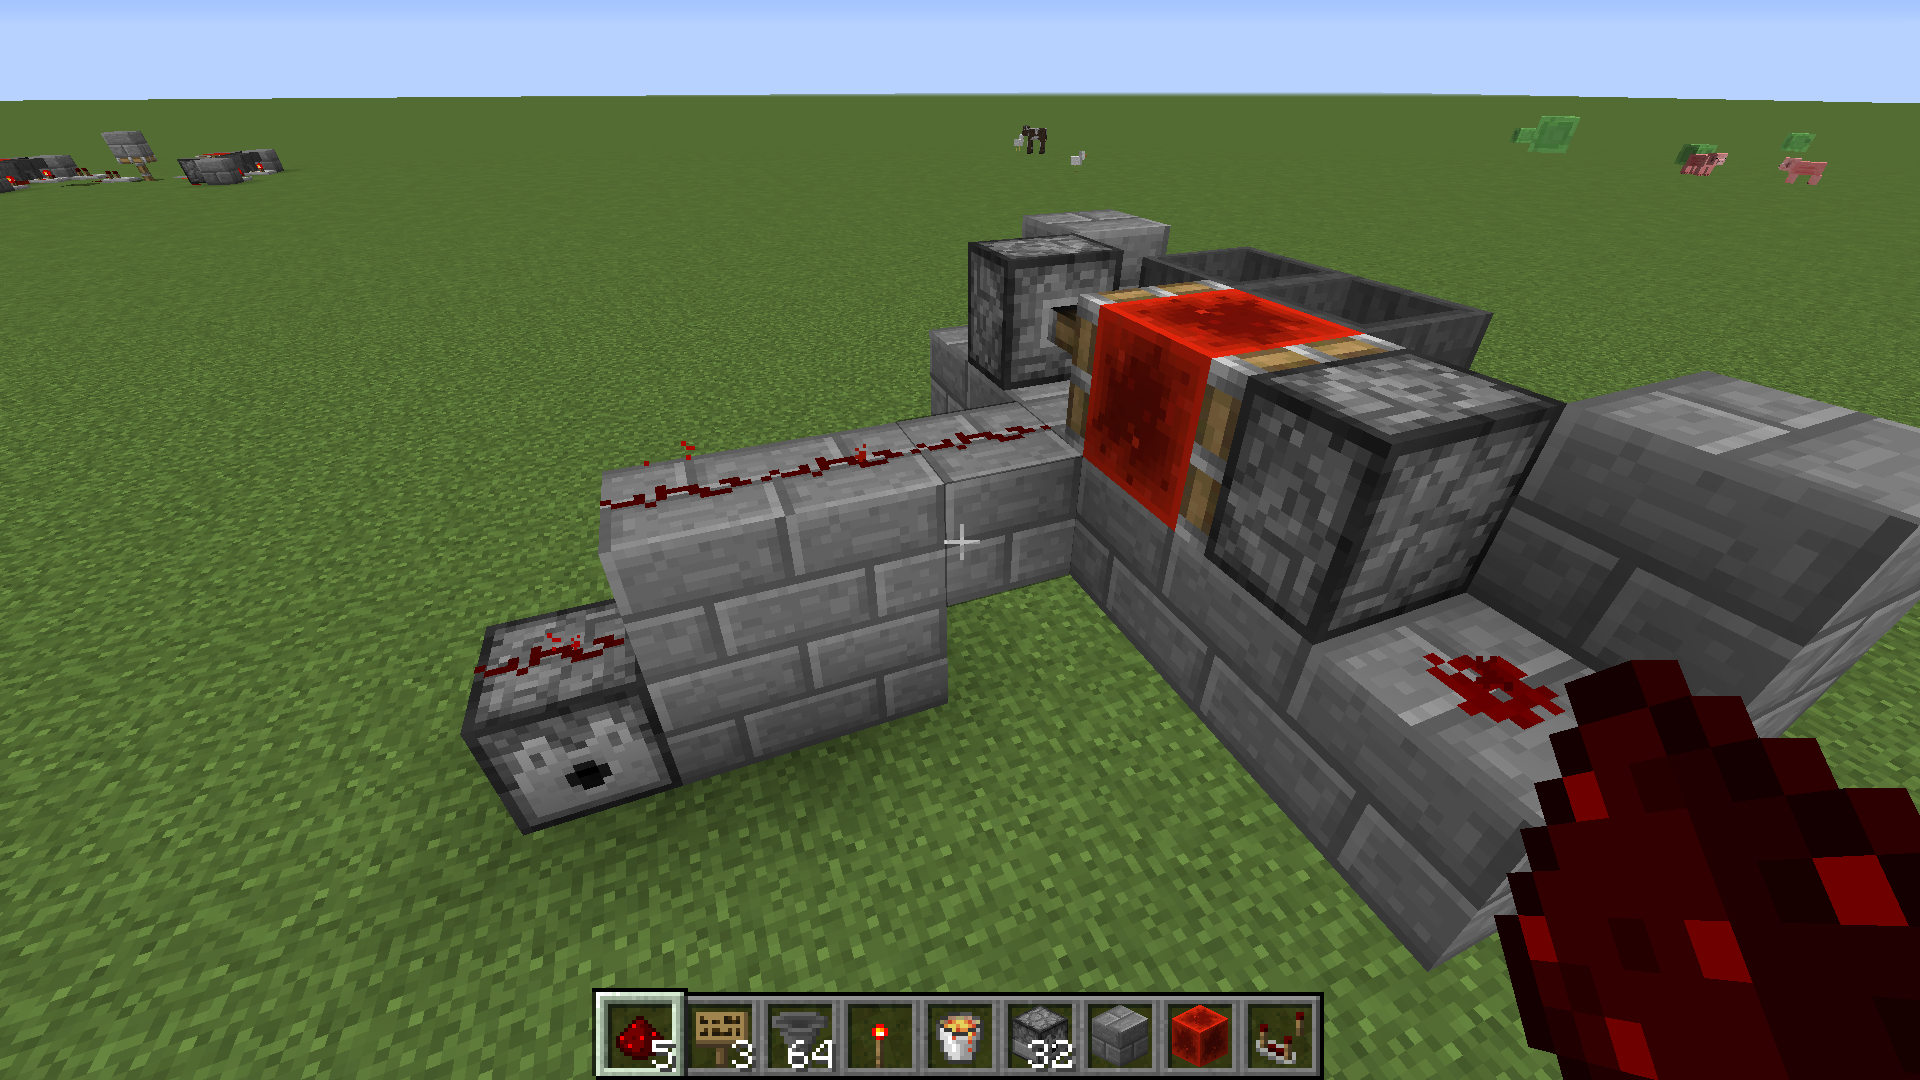 Redstone not activating dispenser? - Redstone Discussion and